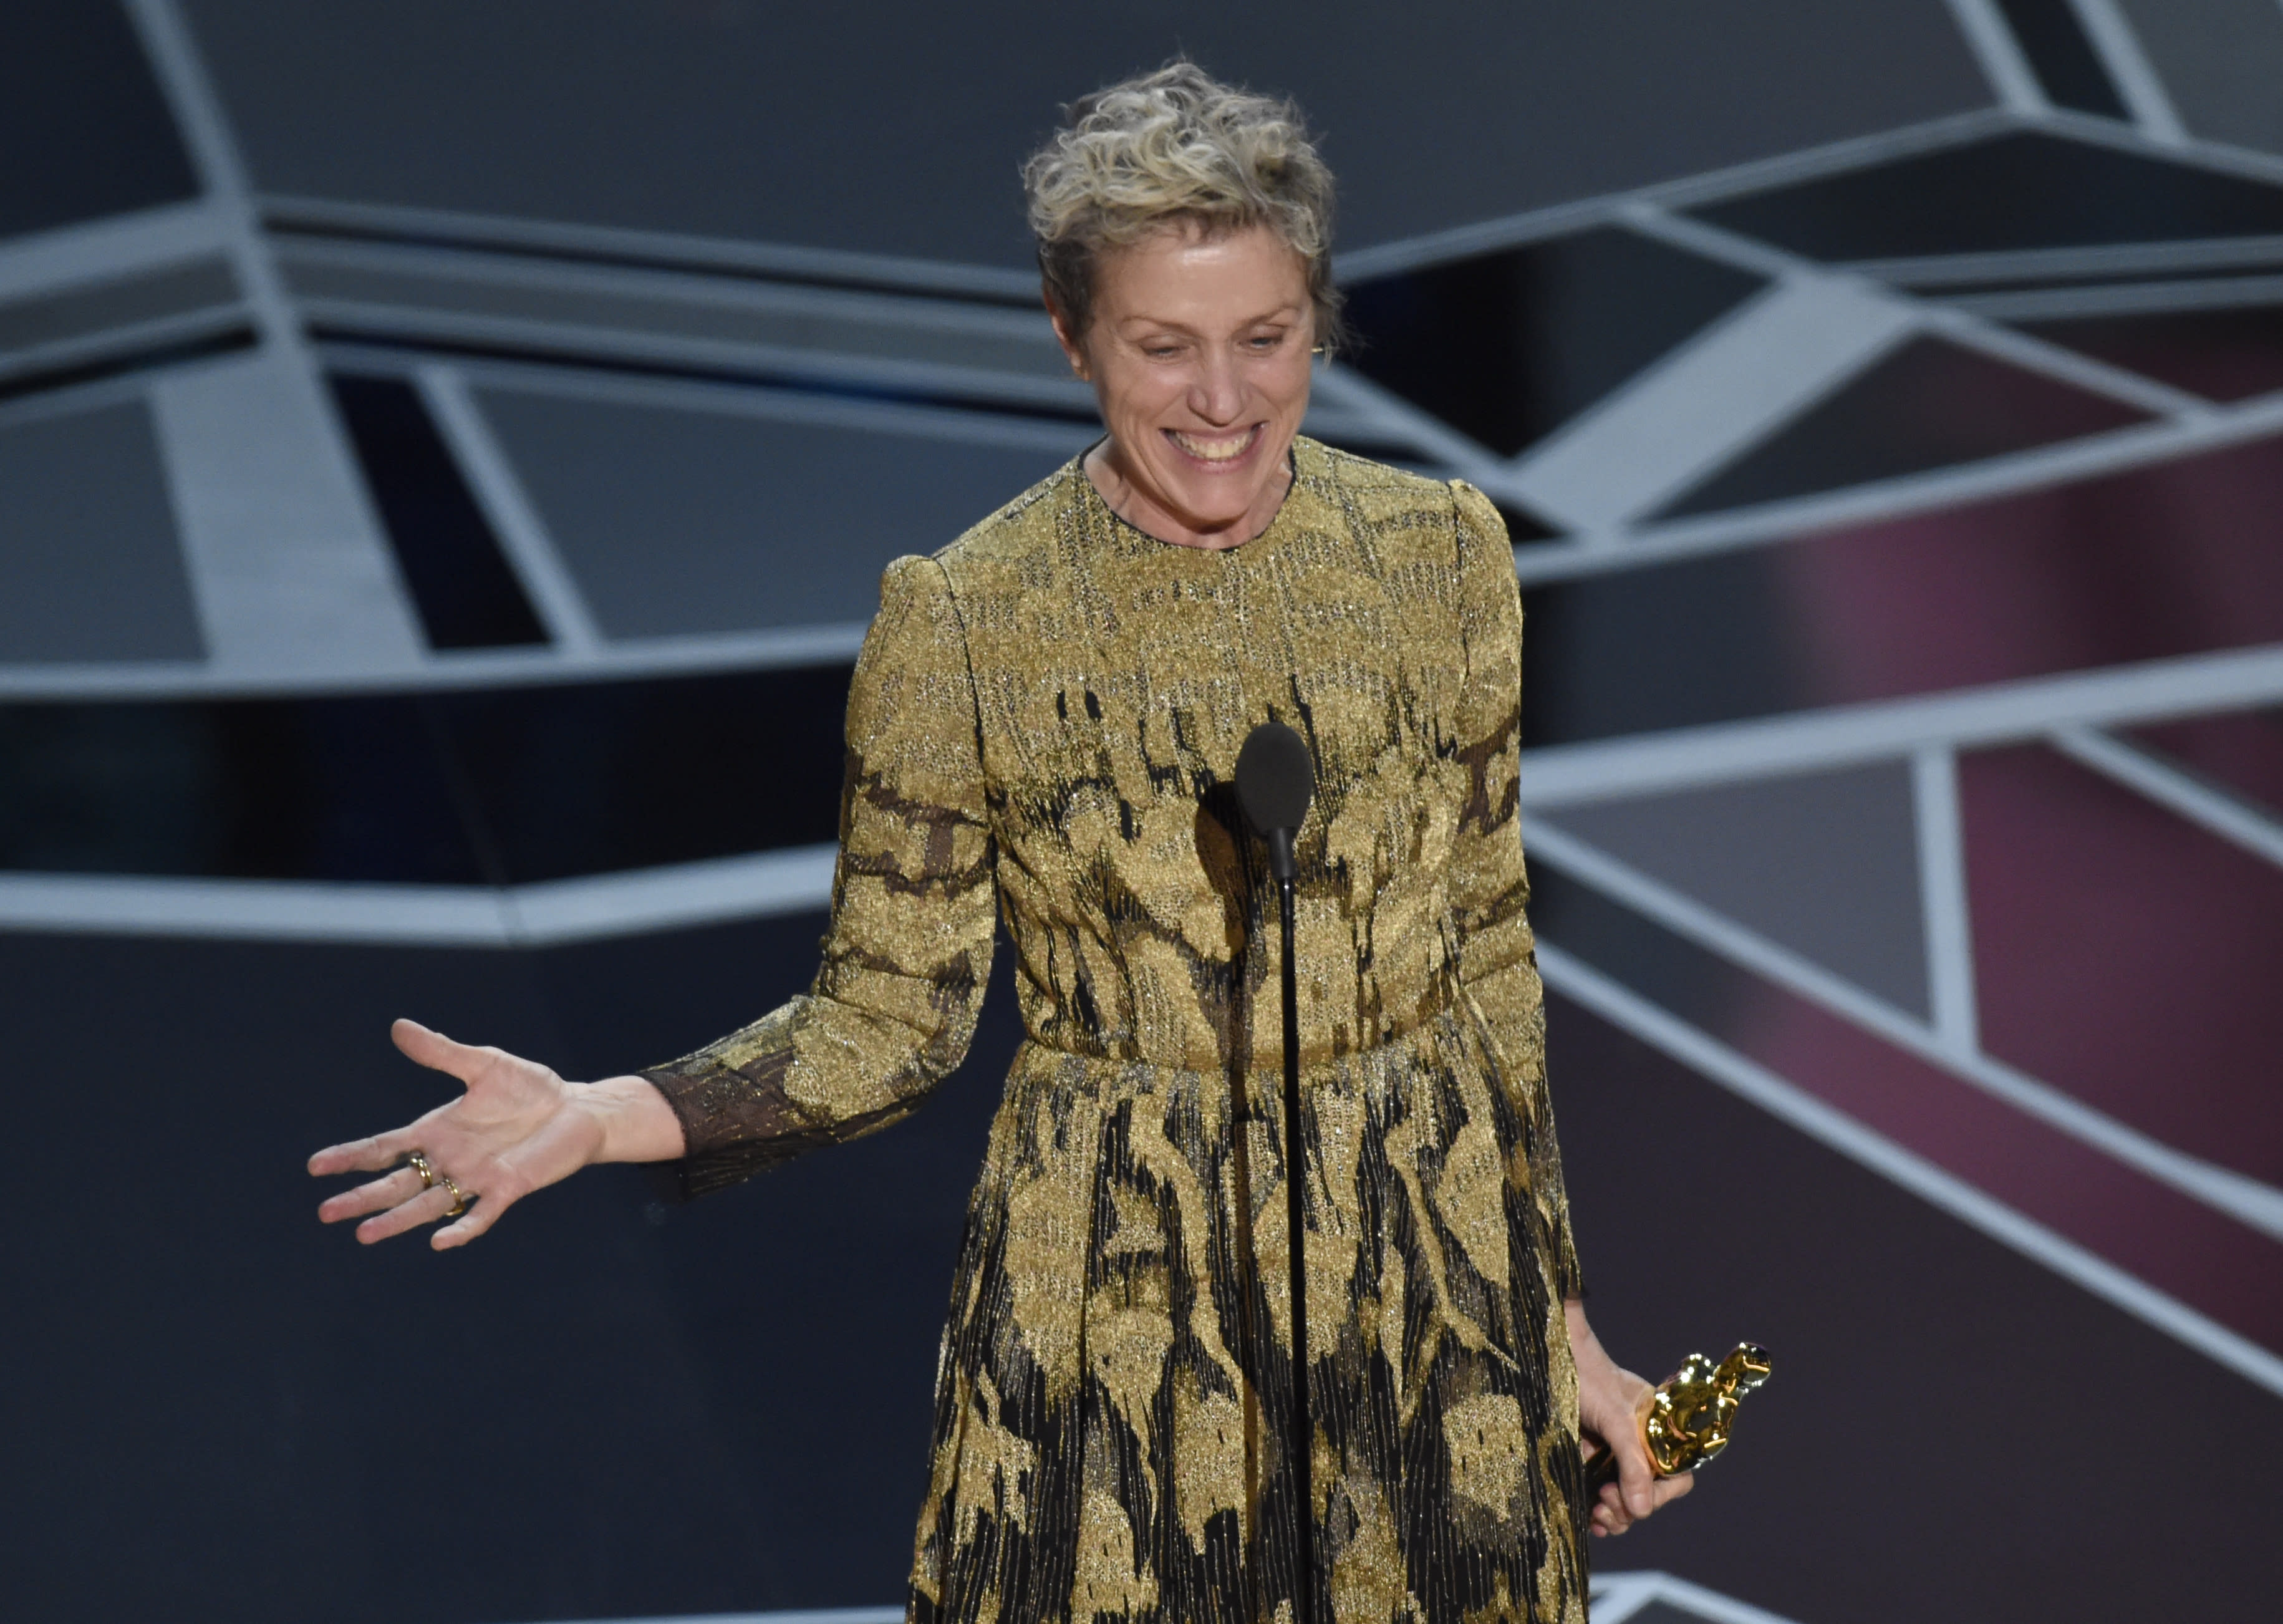 The security team at the annual post-Oscars Governers Awards Ball is looking for a man who tried to make off with Frances McDormand's statue for Best Actress.